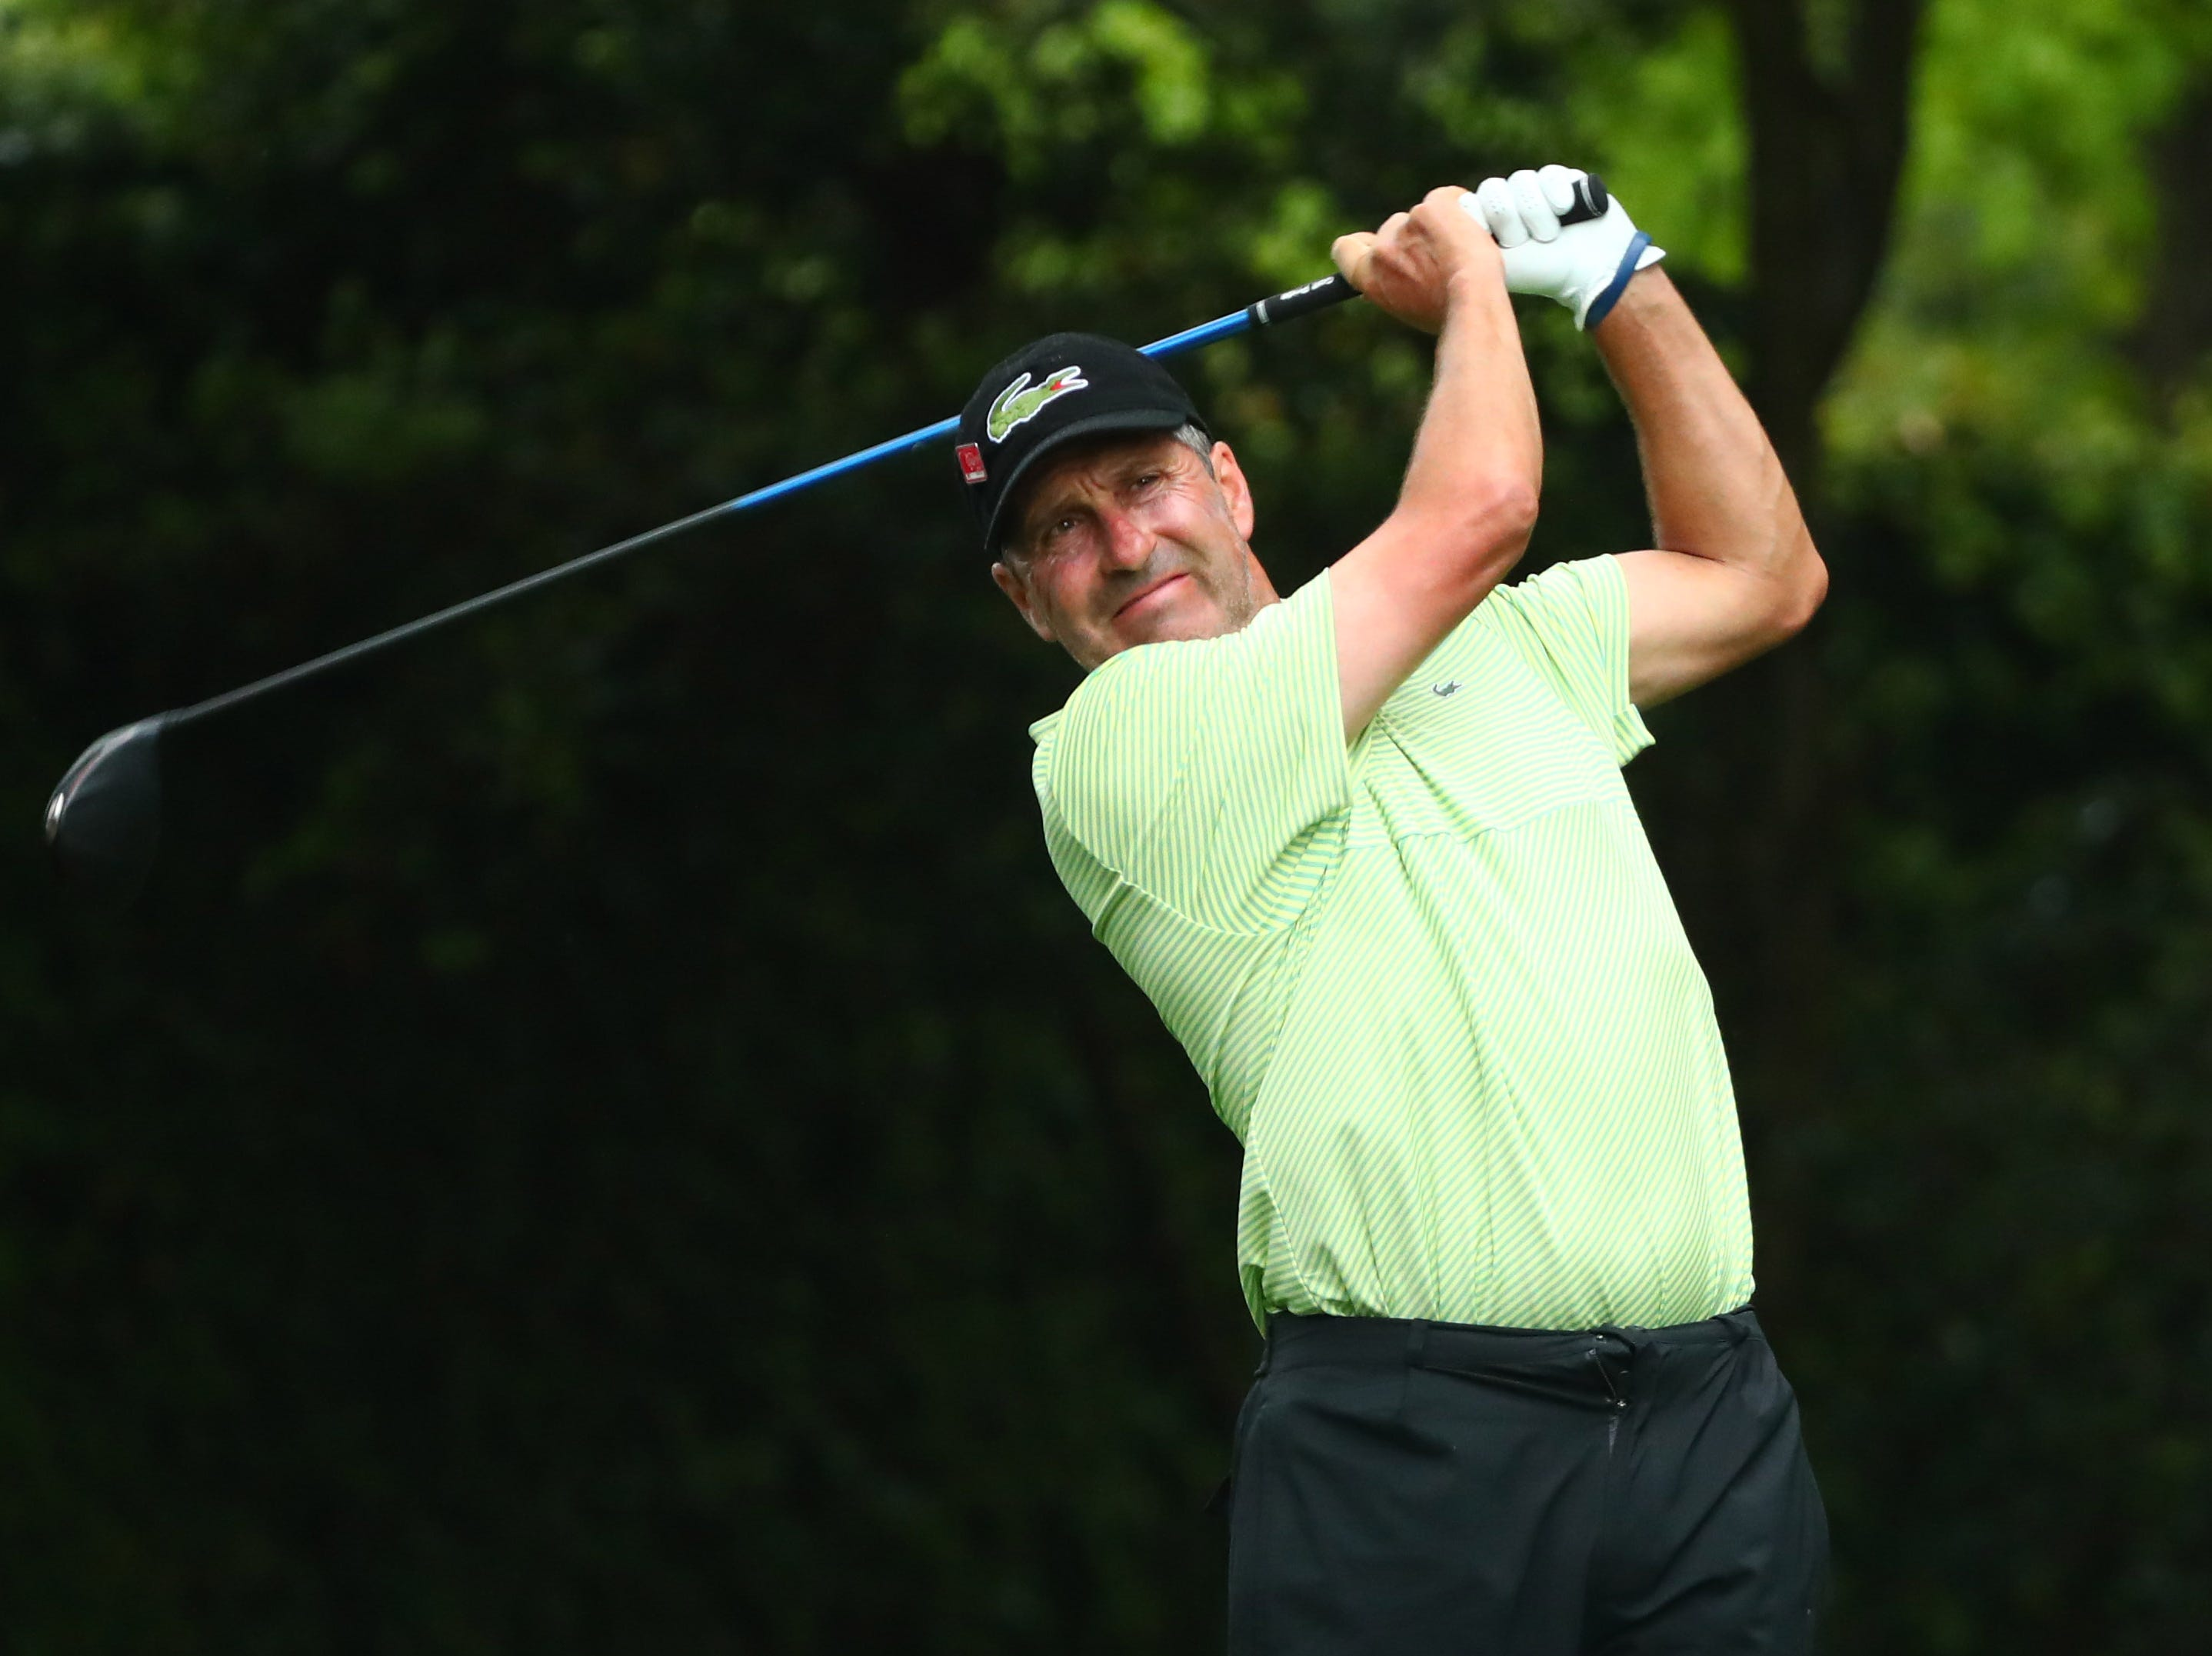 Apr 12, 2019; Augusta, GA, USA; Jose Maria Olazabal hits his tee shot on the 2nd hole during the second round of The Masters golf tournament at Augusta National Golf Club. Mandatory Credit: Rob Schumacher-USA TODAY Sports